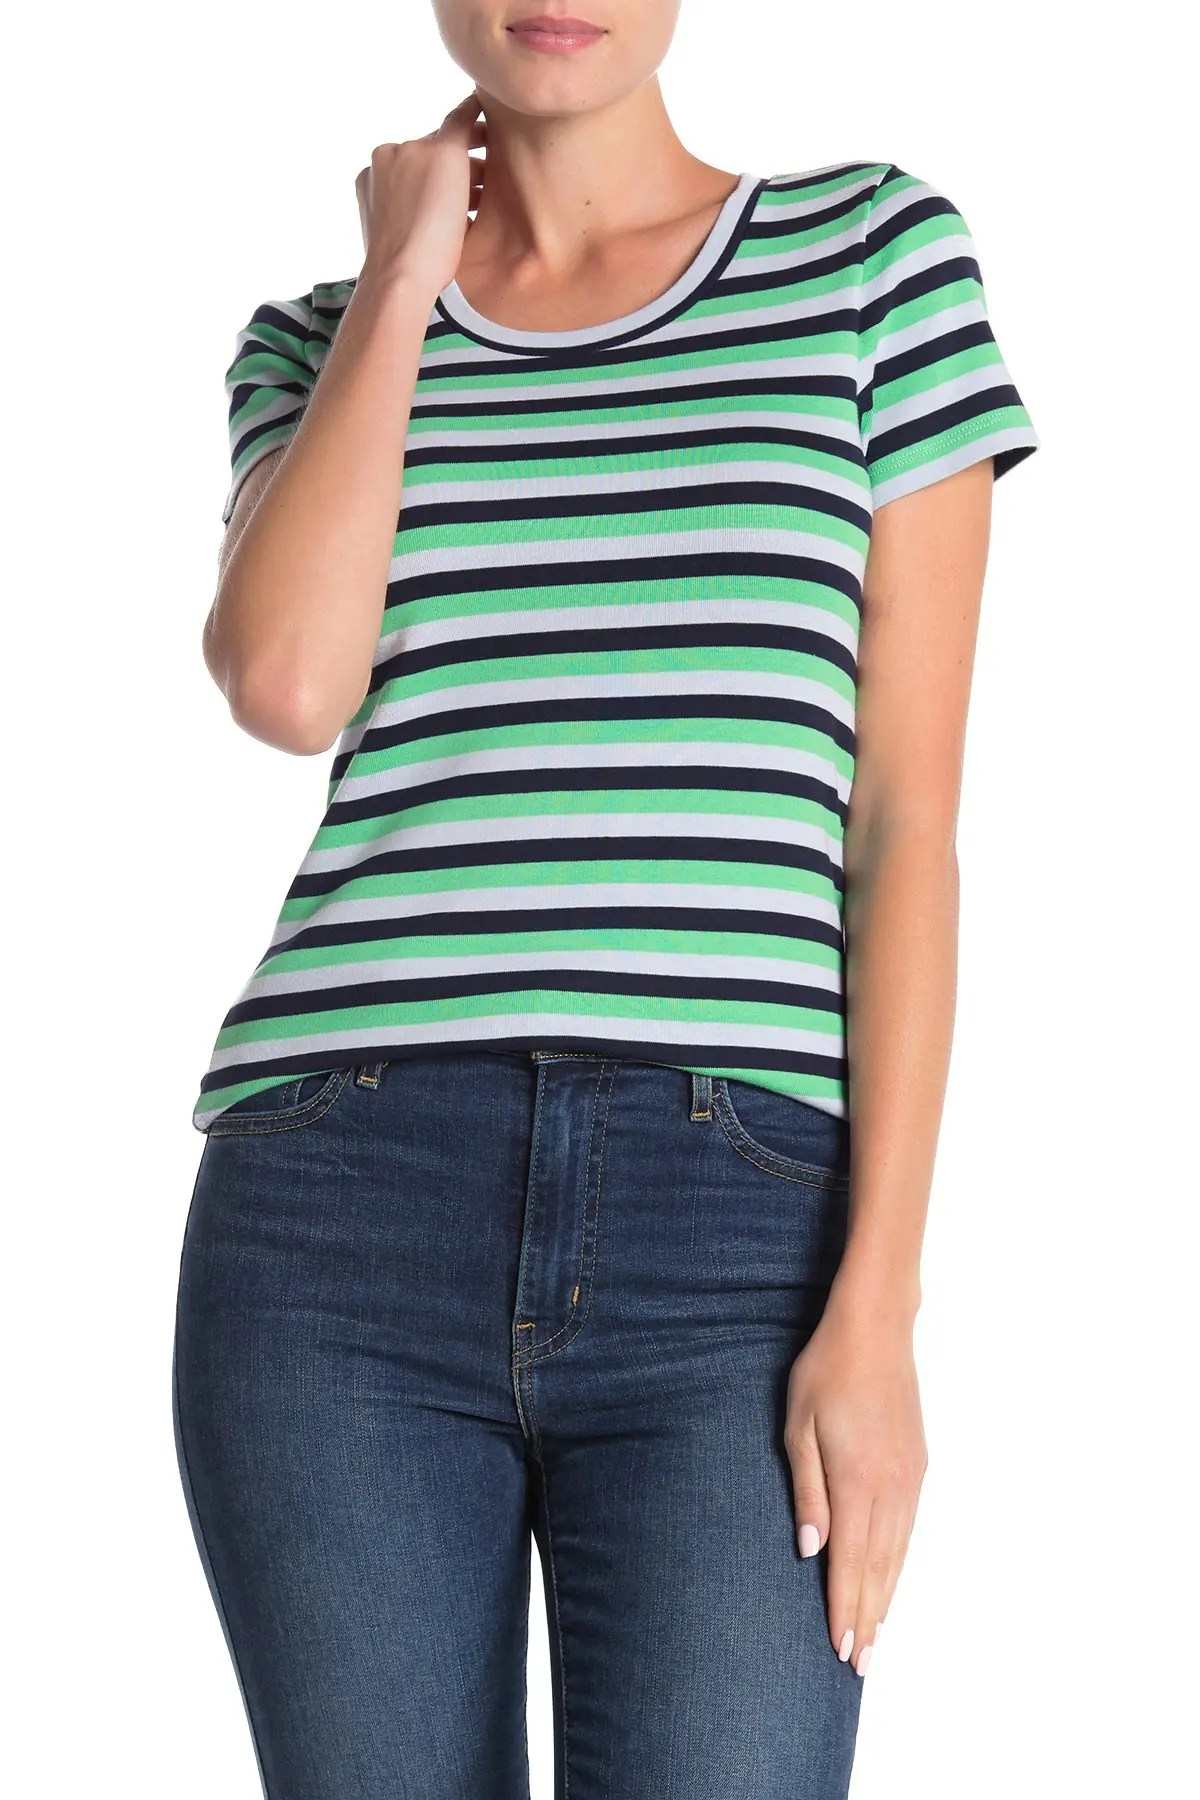 J Crew Perfect Fit Tee : perfect, Striped, Perfect, T-Shirt, Nordstrom